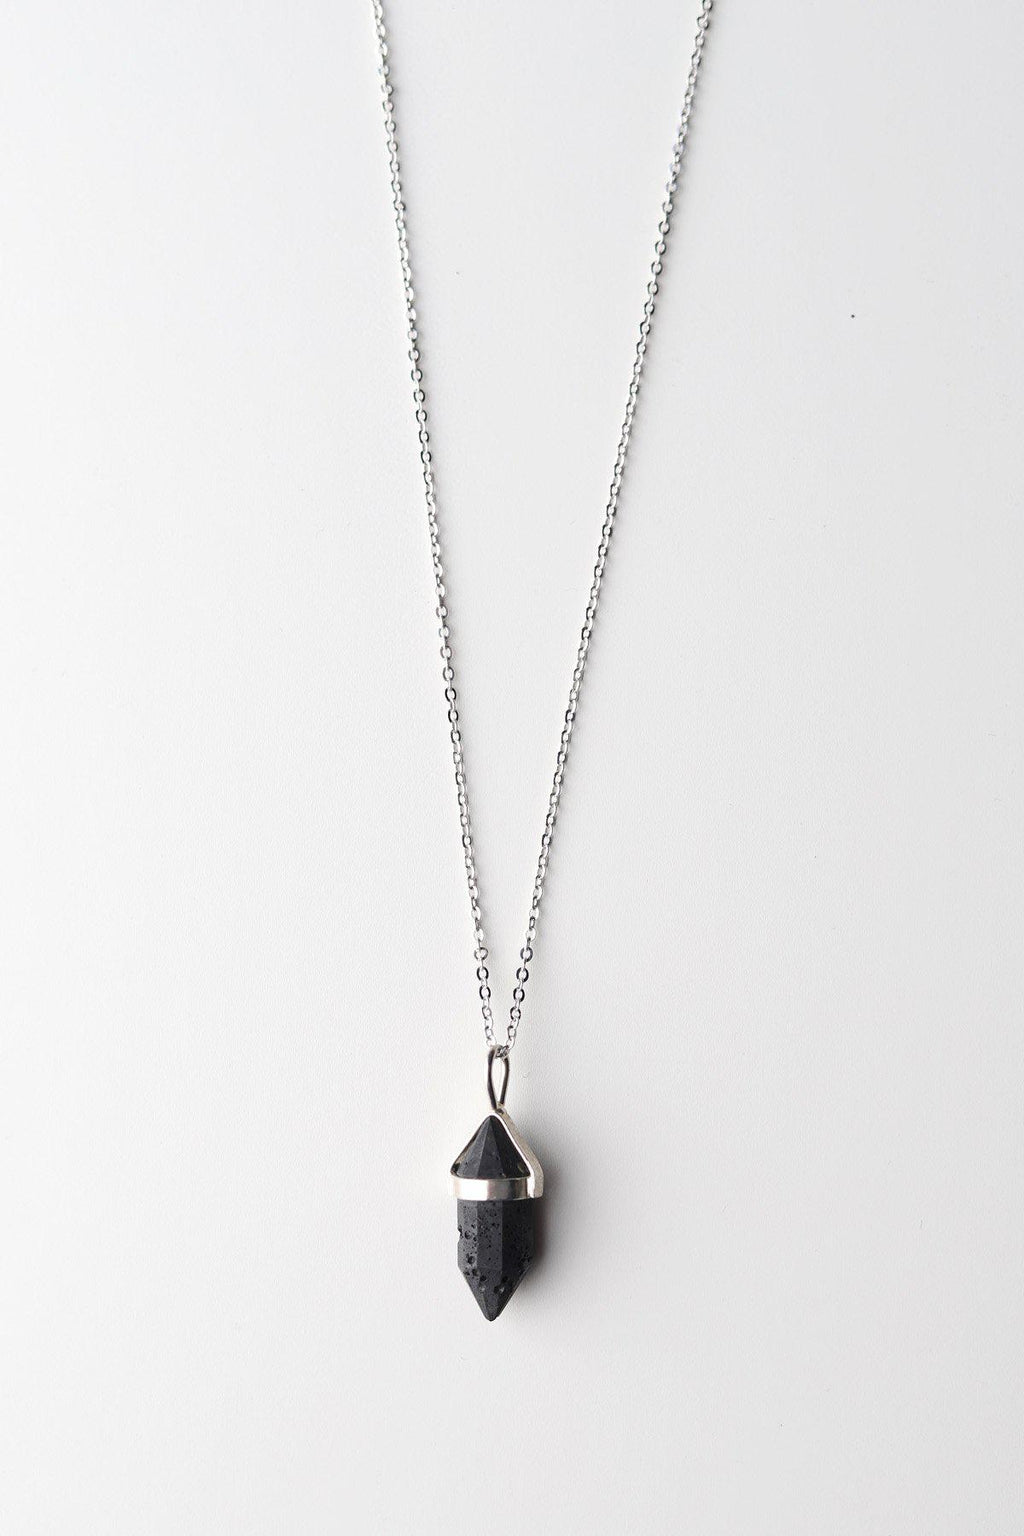 Crystal Point Aromatherapy Necklace / Silver - Gallery 512 Boutique